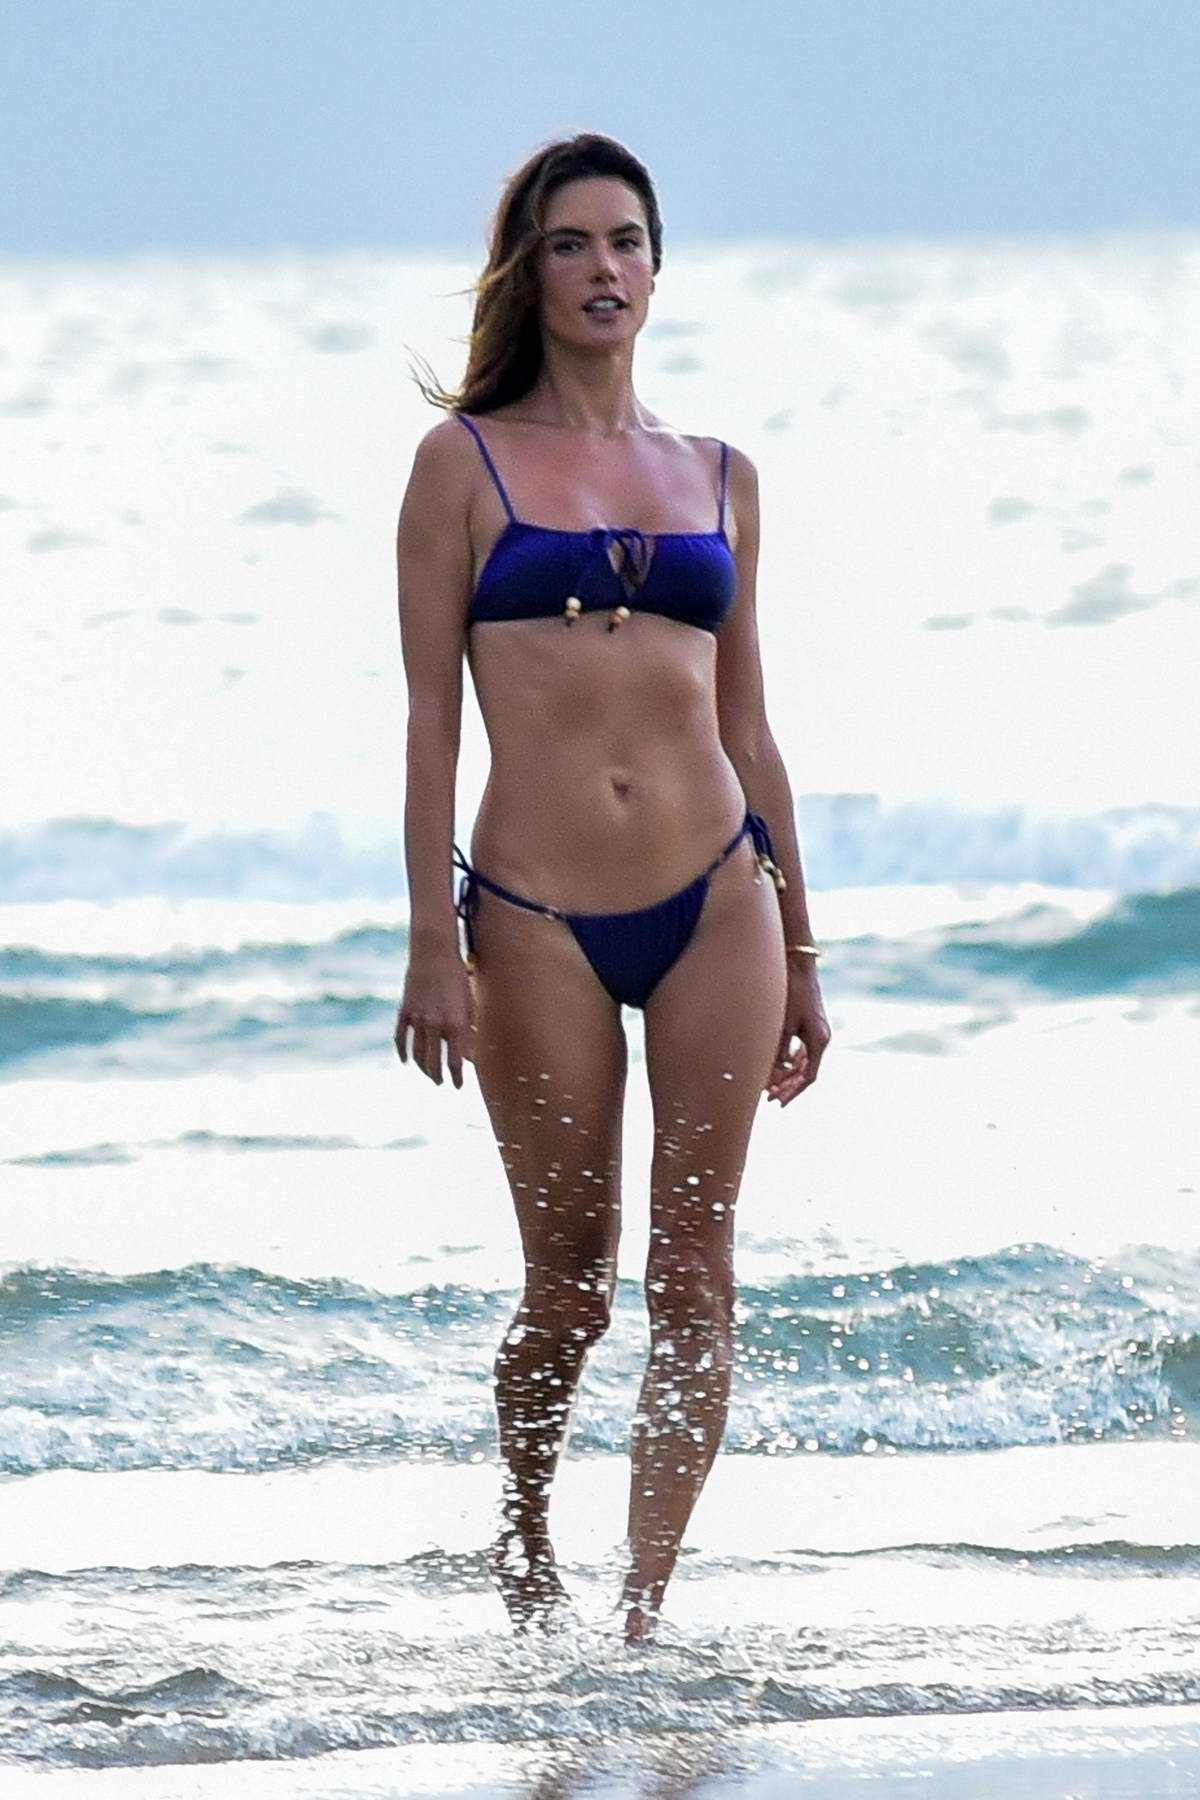 Alessandra Ambrosio looks amazing in a blue bikini during beach photoshoot for her new bikini collection in Florianopolis, Brazil